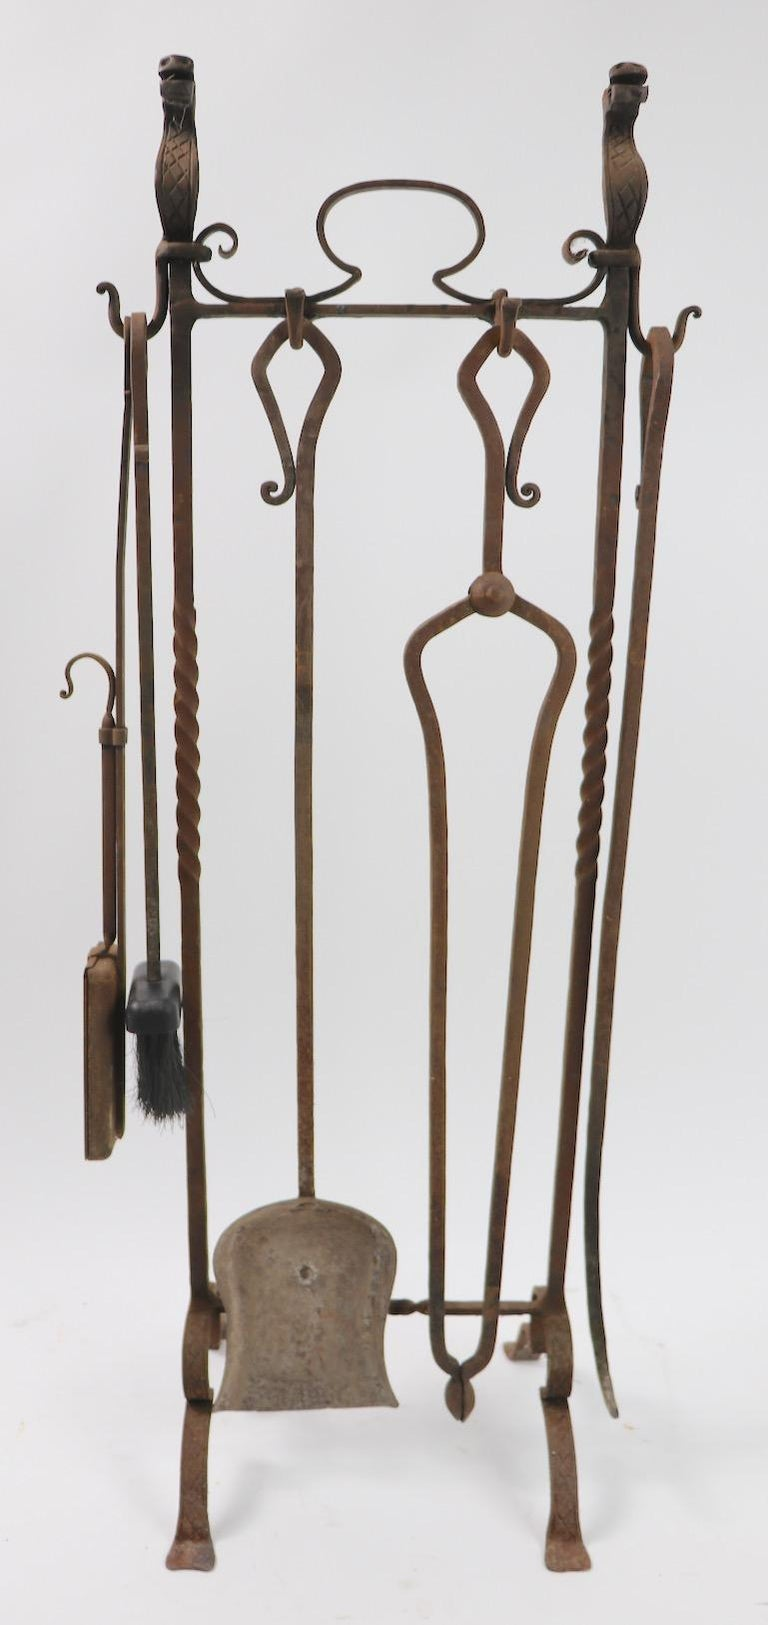 20th Century 6-Piece Gothic Revival Fireplace Tool Set after Yellin For Sale